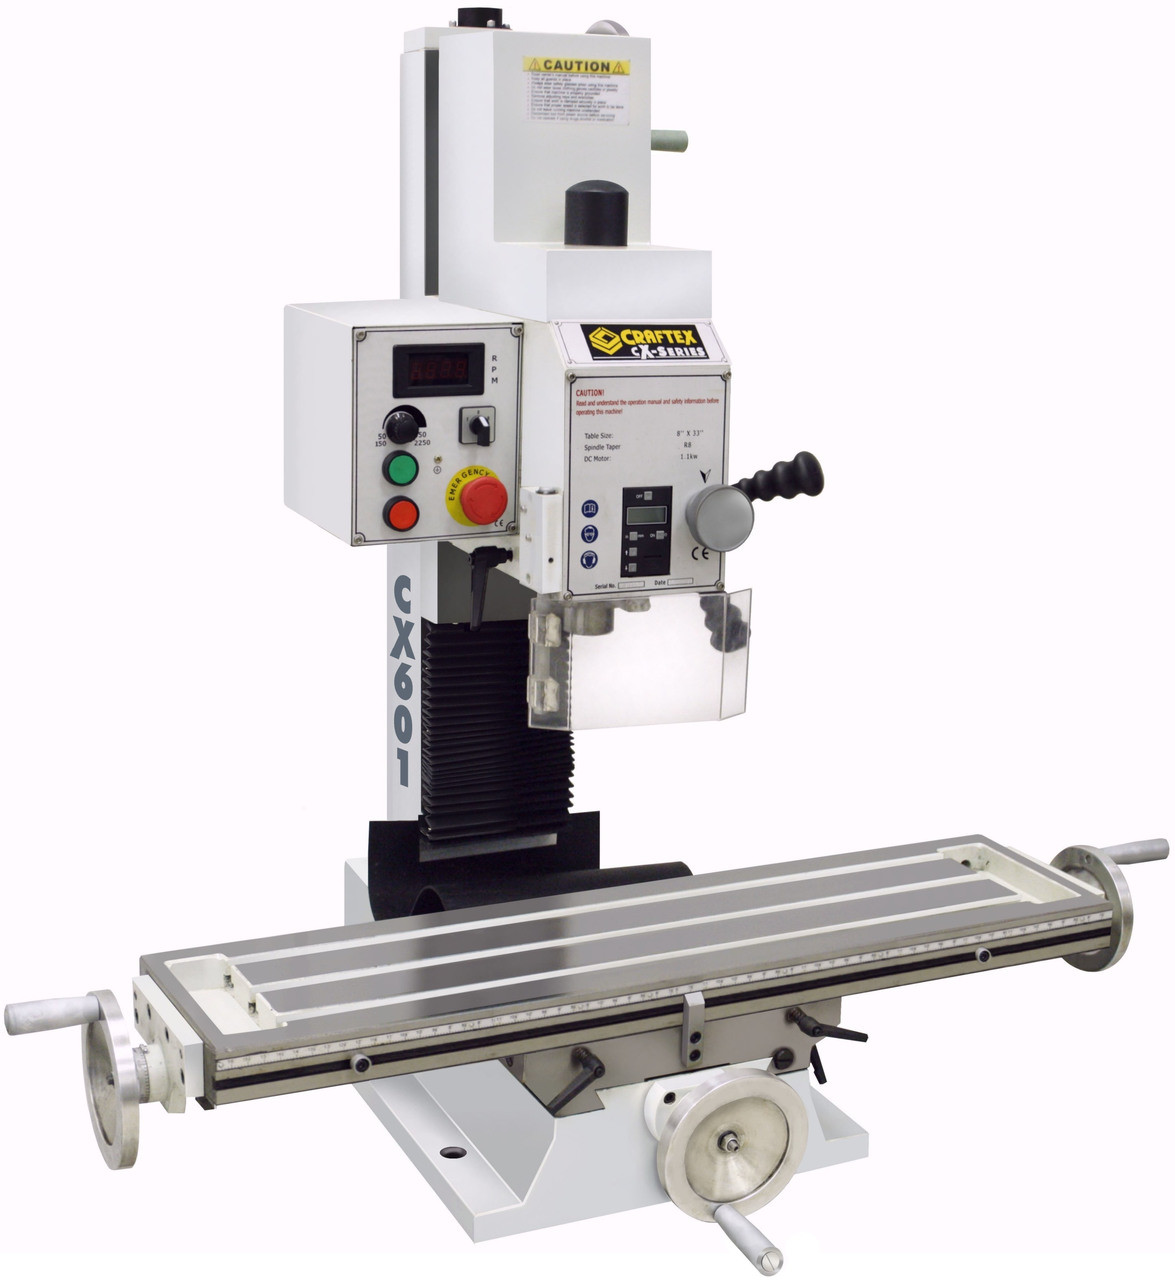 Milling Machine For Sale >> Buy Milling Machine With Digital Readout At Busy Bee Tools